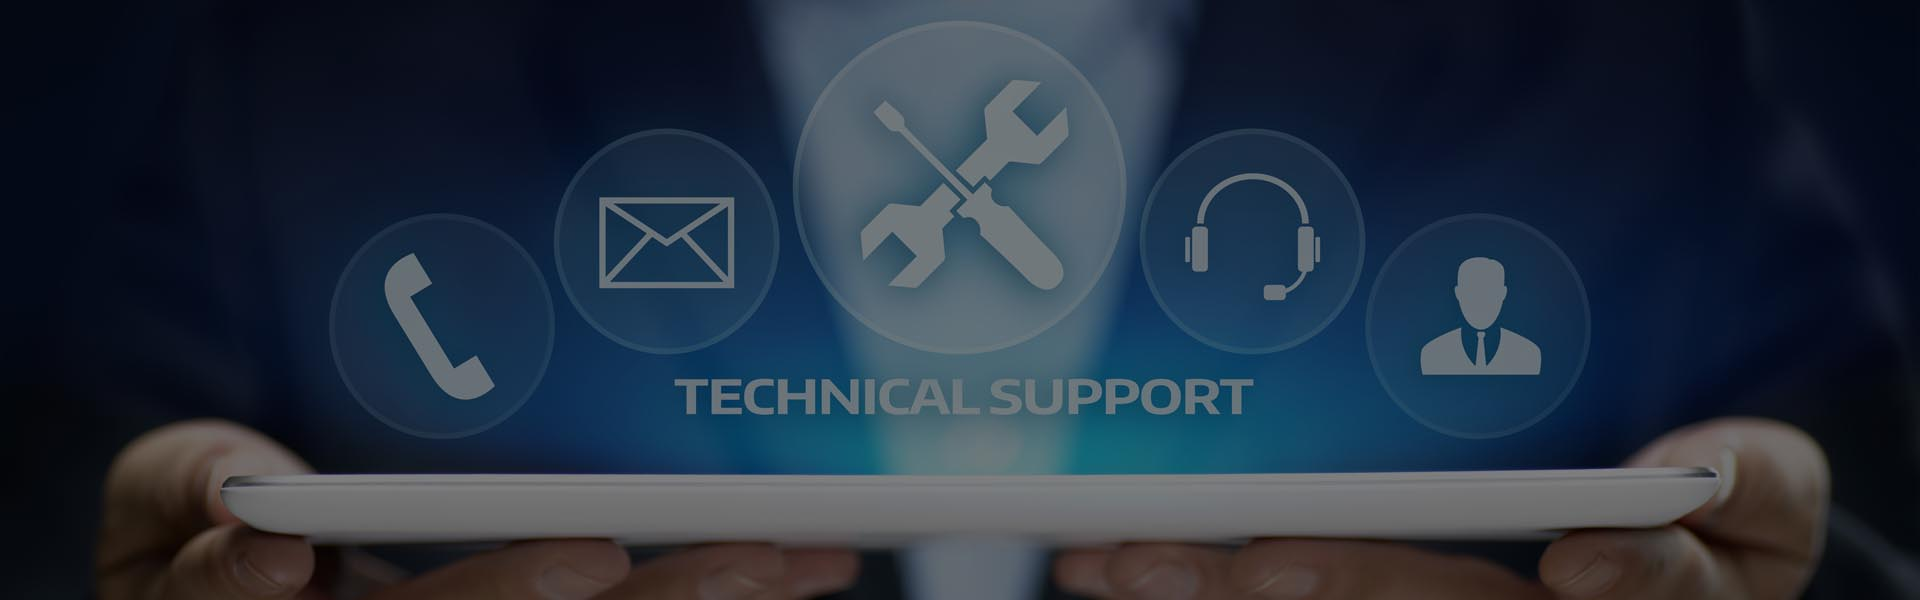 AVITI IT Technical Support